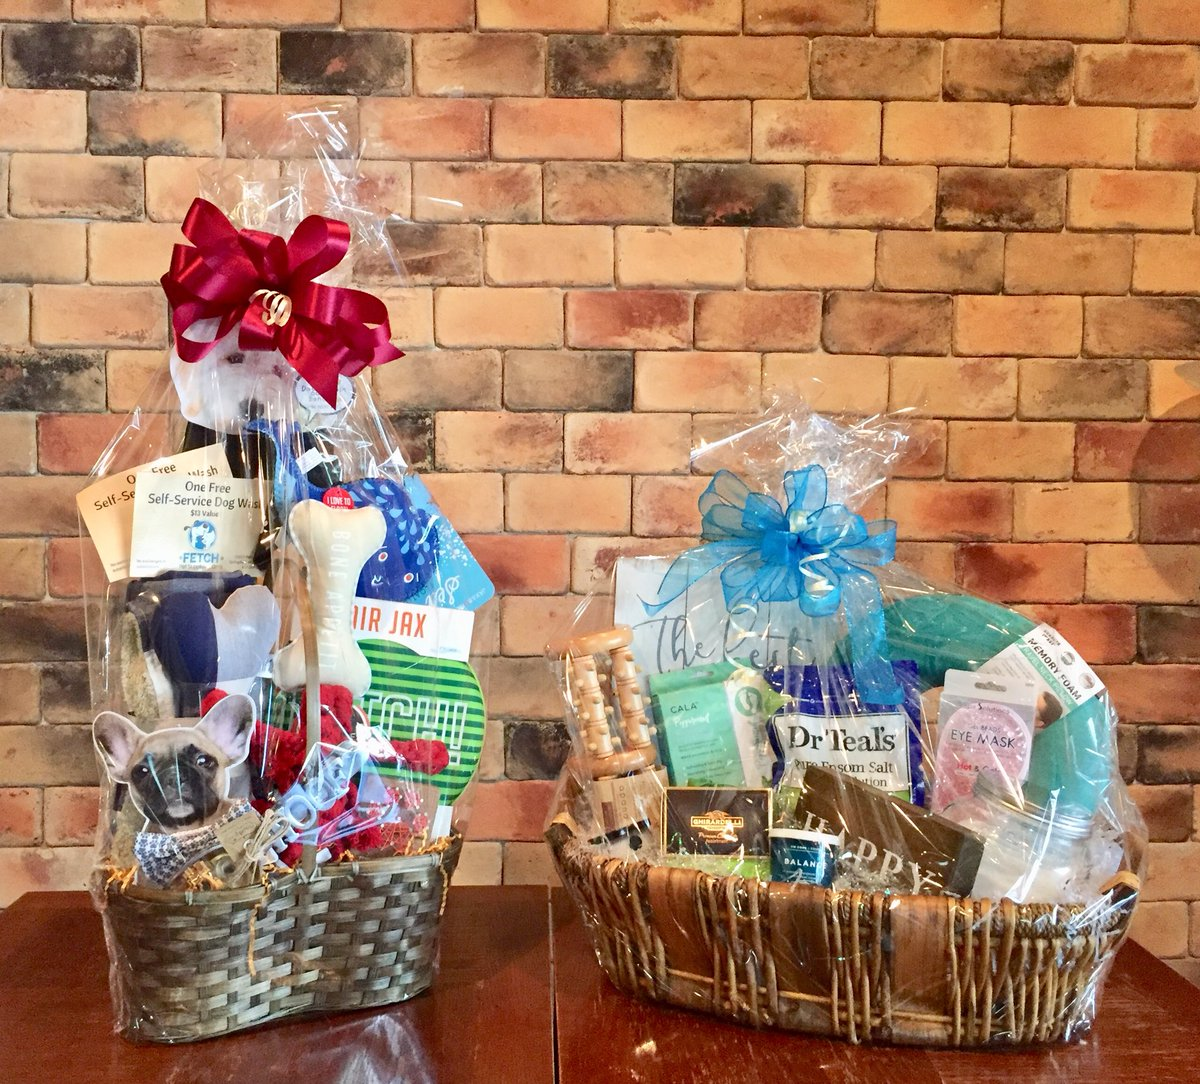 Cox College On Twitter Here Are Just A Few Of The Baskets That